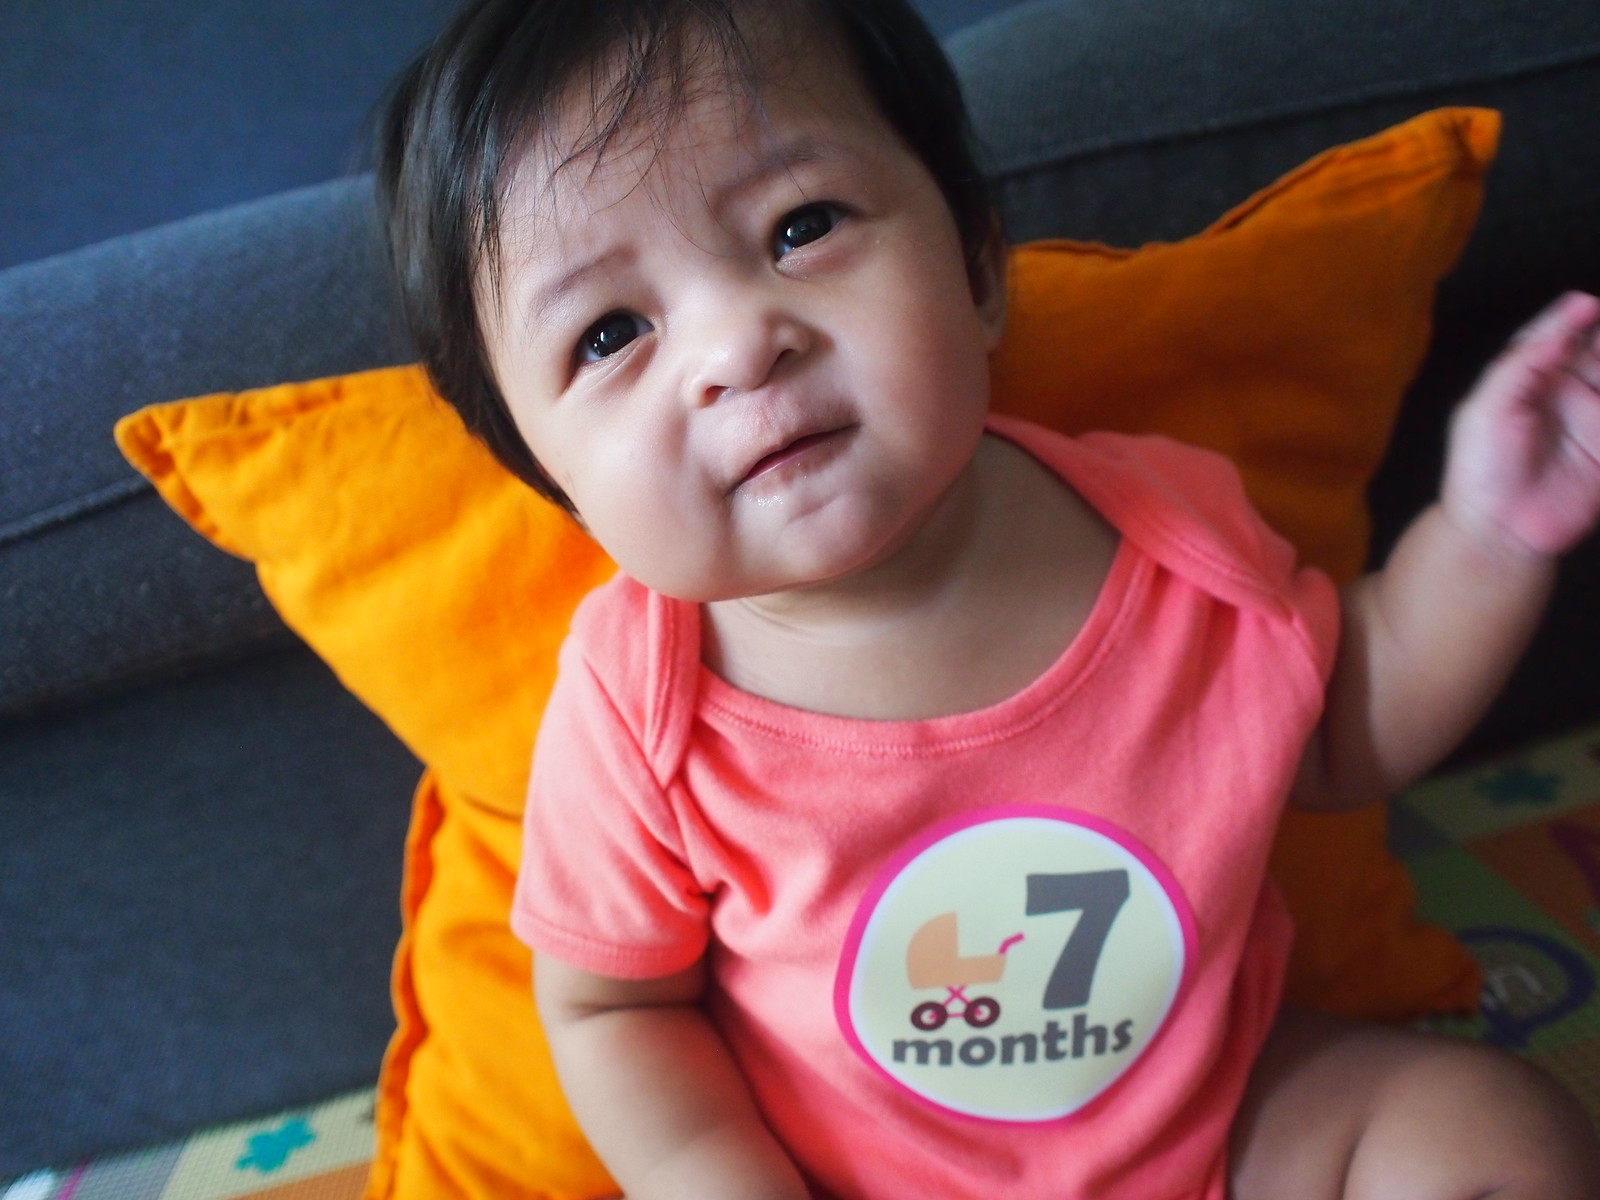 Zara at 7 month